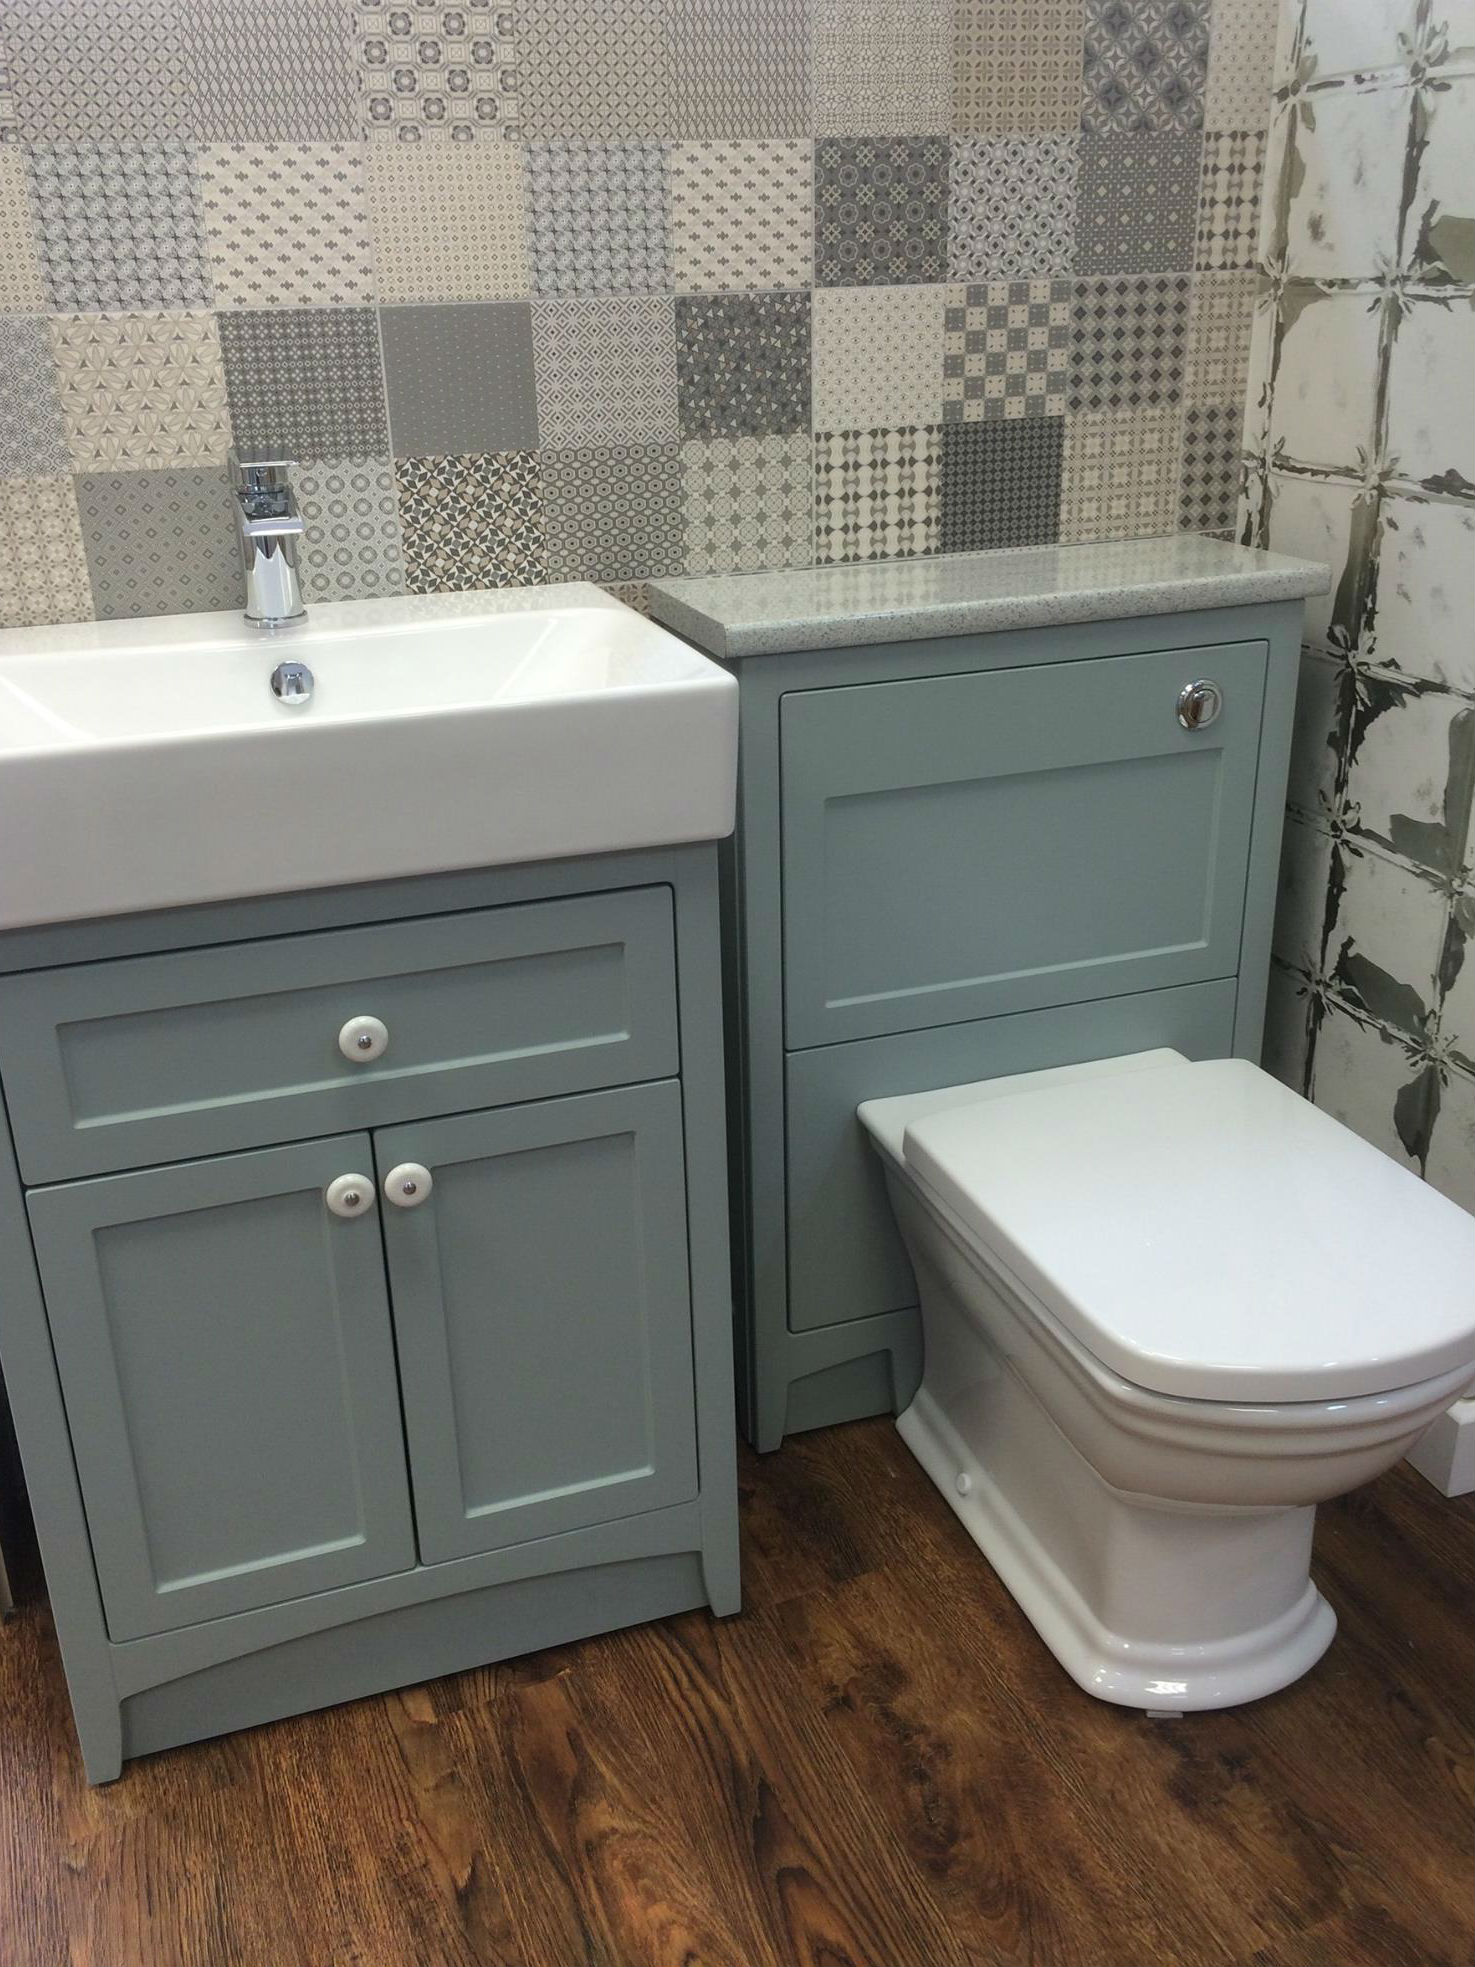 Bathroom Tiles Yate fitted bathrooms bristol | bespoke bathroom design and installation